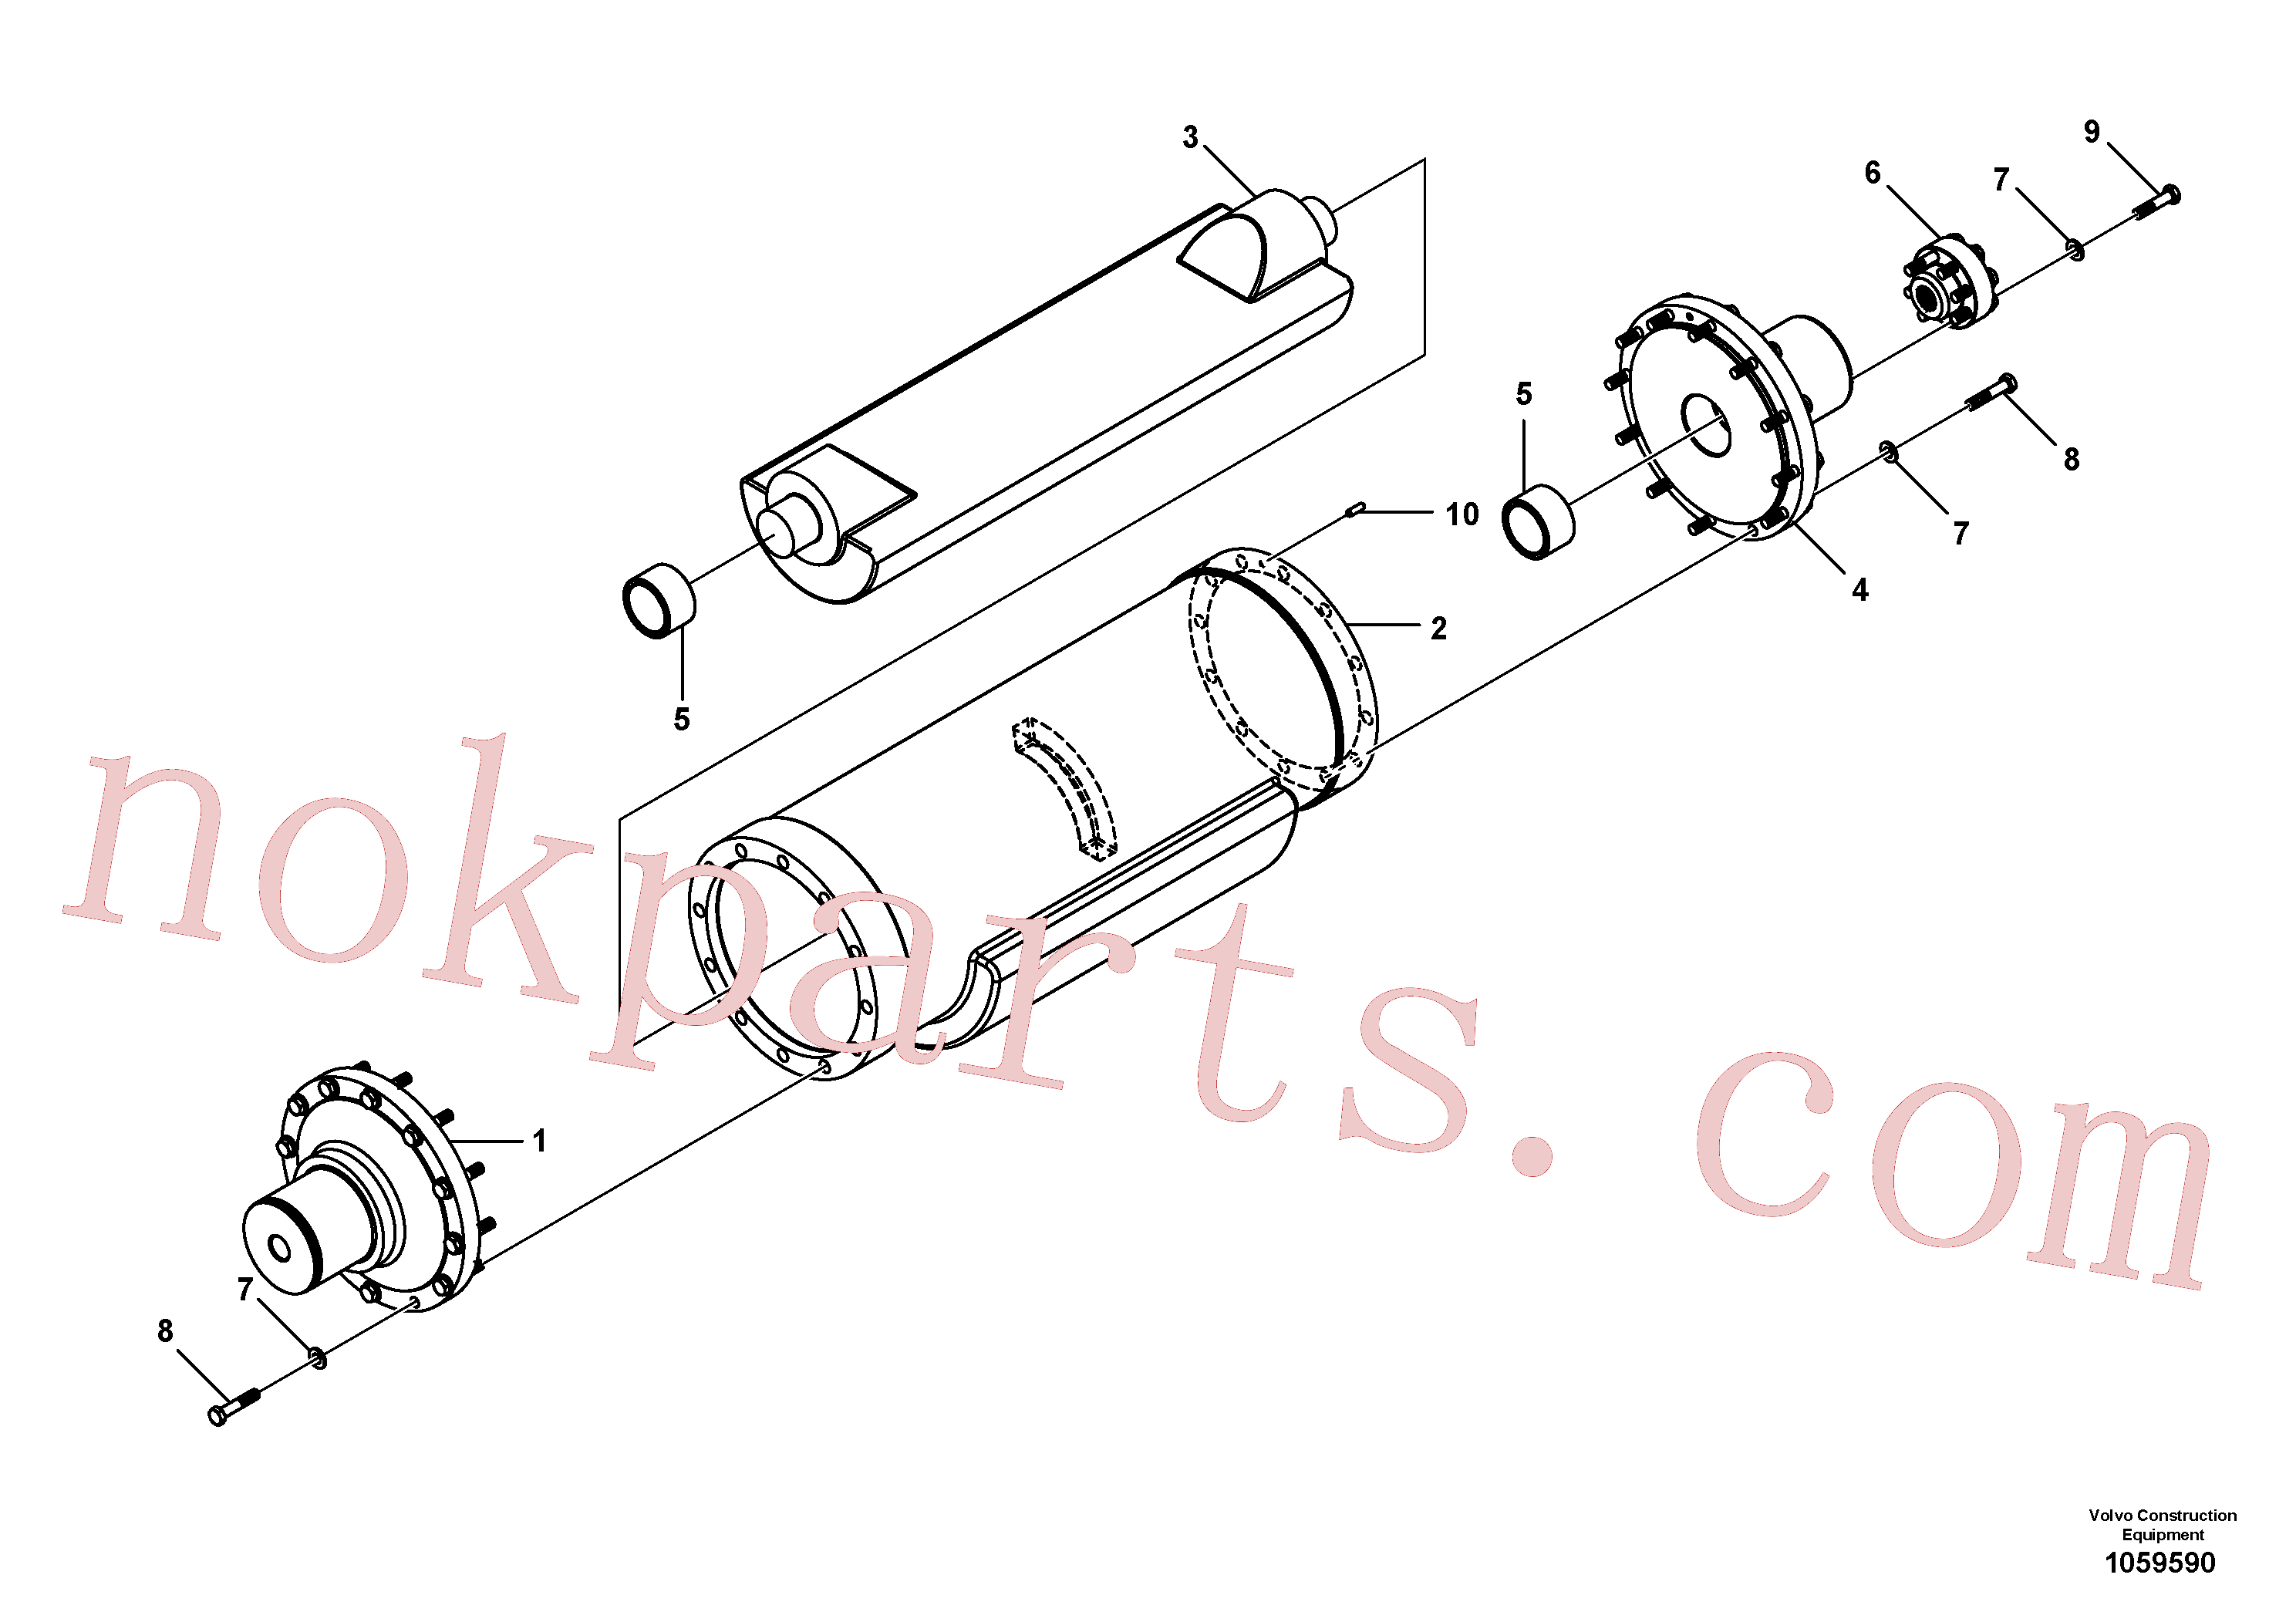 RM96702428 for Volvo Eccentric Shaft Assembly(1059590 assembly)